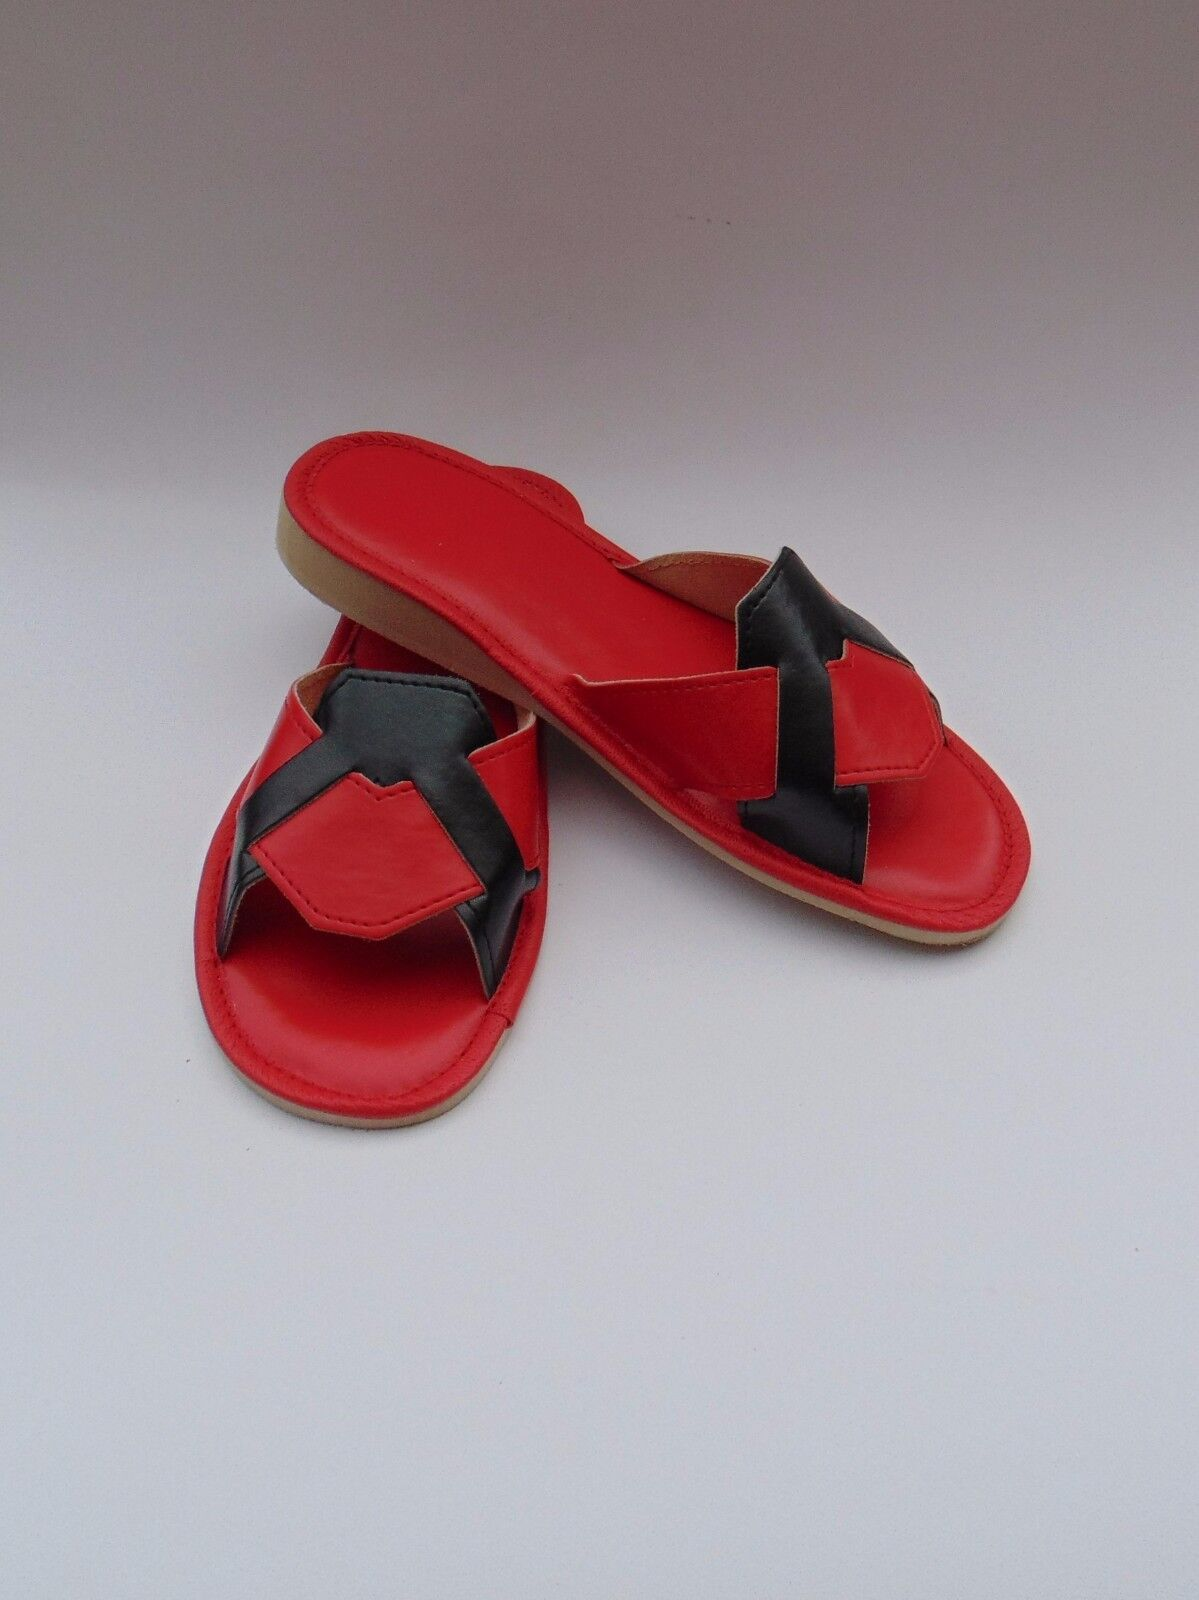 Ladies soft leather slippers*ORIGINAL 5,6,7,8 EU HAND MADE PRODUCT*sizes 5,6,7,8 slippers*ORIGINAL 92982a